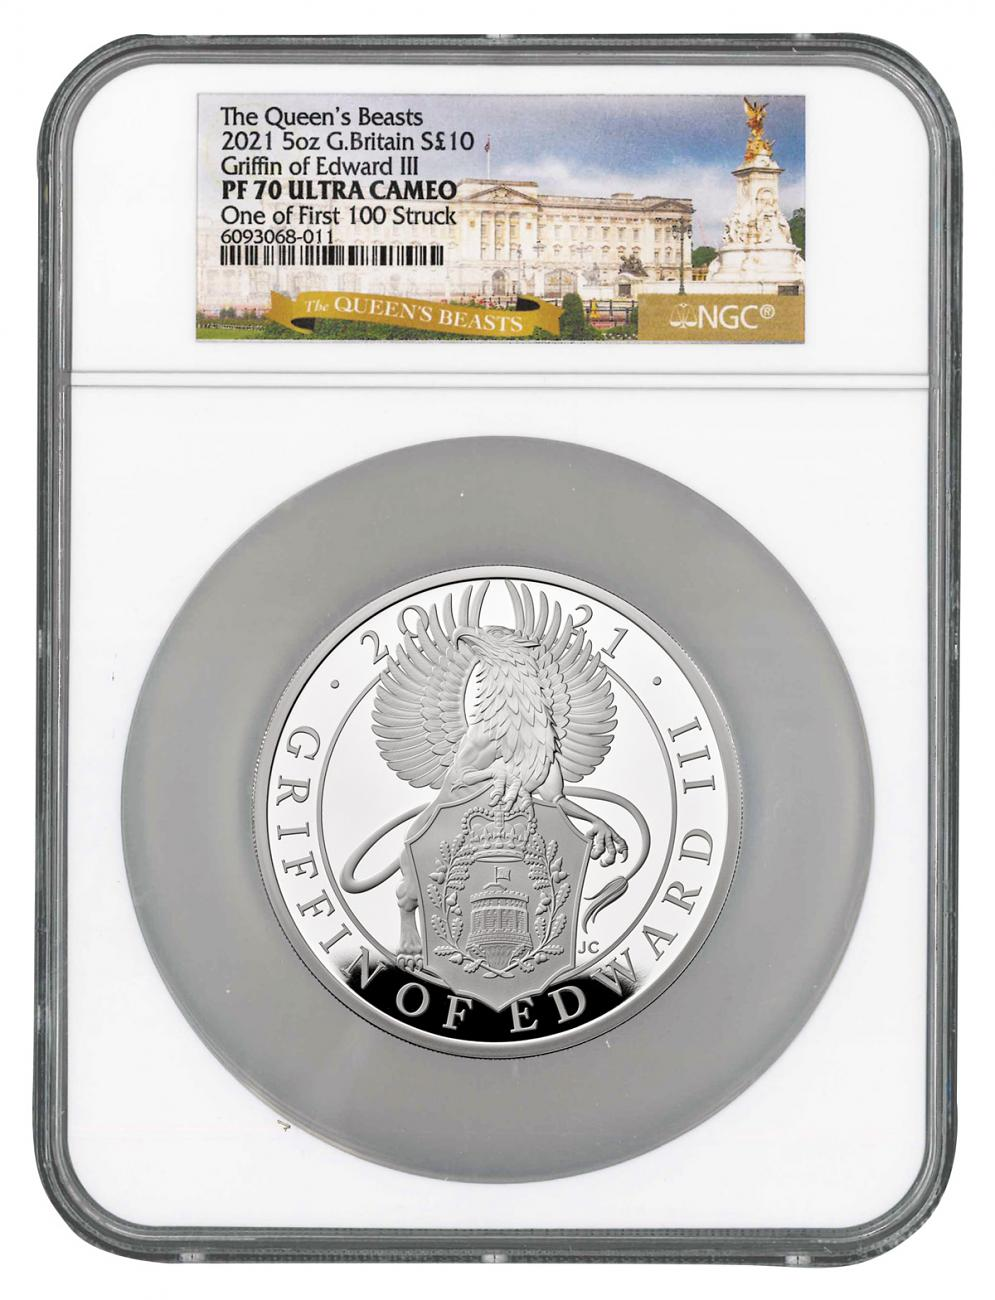 2021 Great Britain 5 oz Silver Queen's Beasts - Griffin of Edward III Proof £10 Coin Scarce and Unique Coin Division NGC PF70 UC FS Queen's Beasts Label